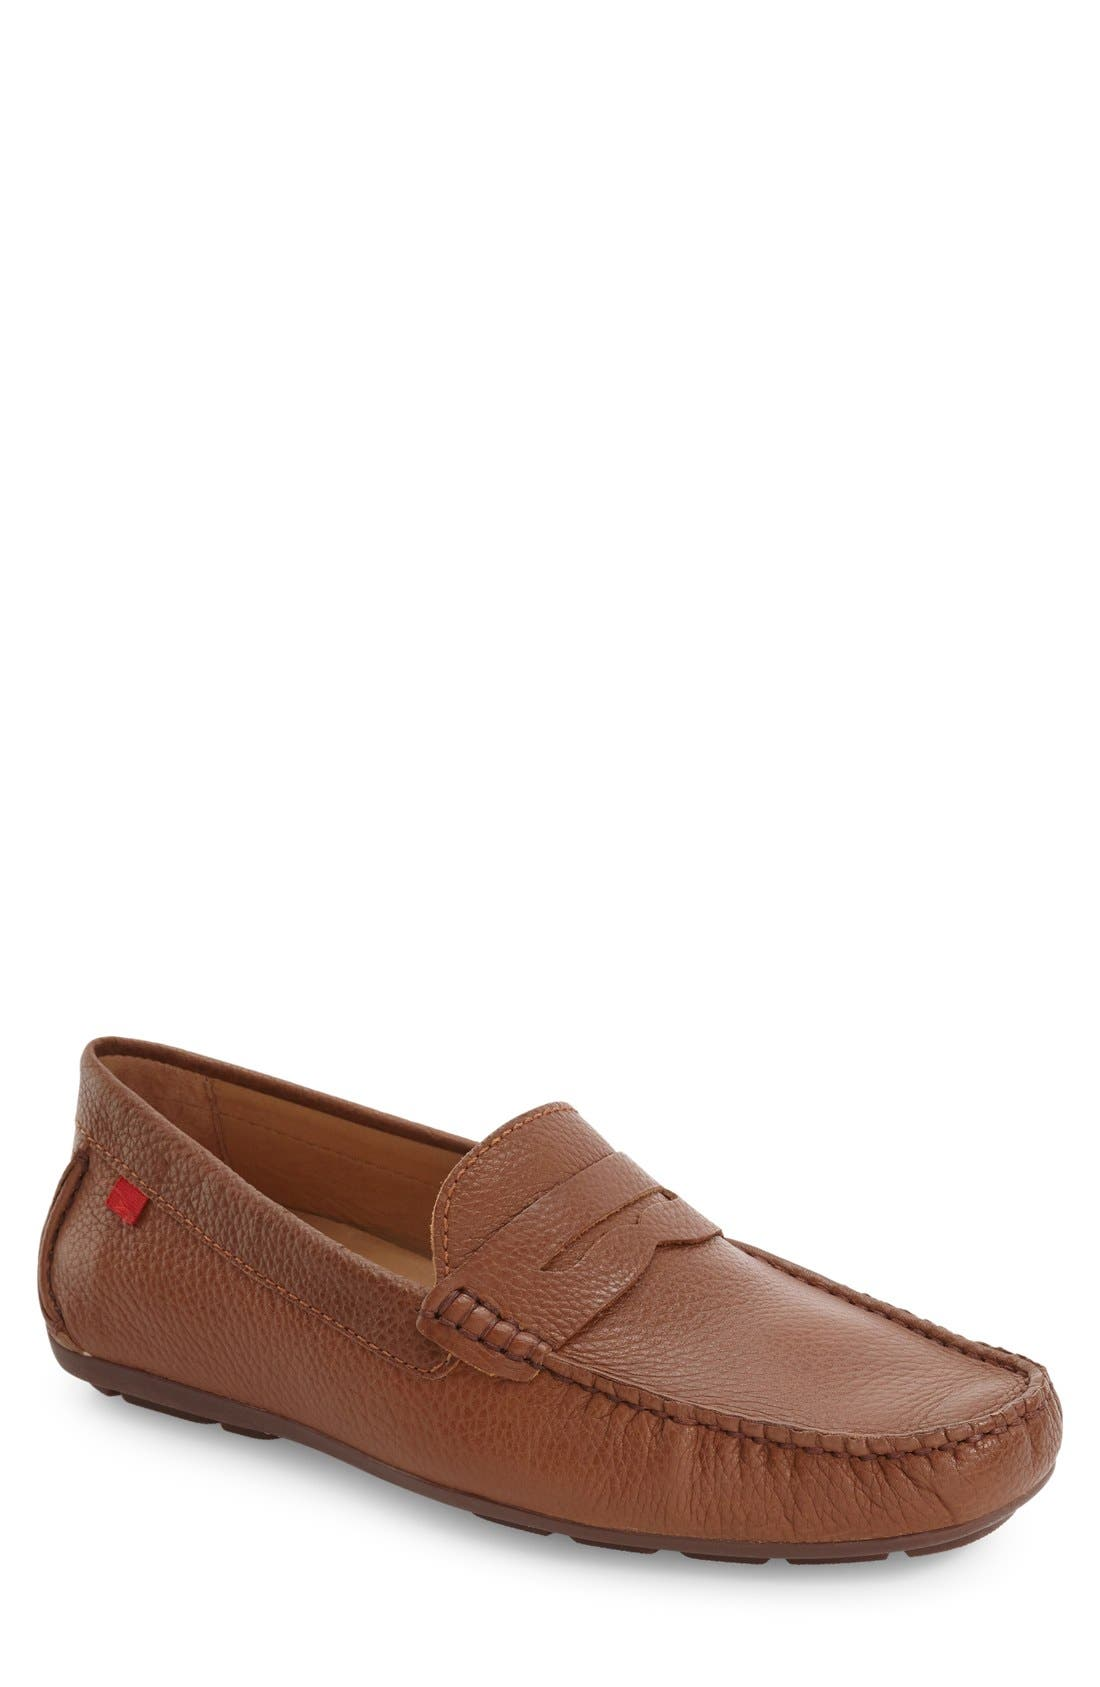 Main Image - Marc Joseph New York 'Union Street' Penny Loafer (Men)